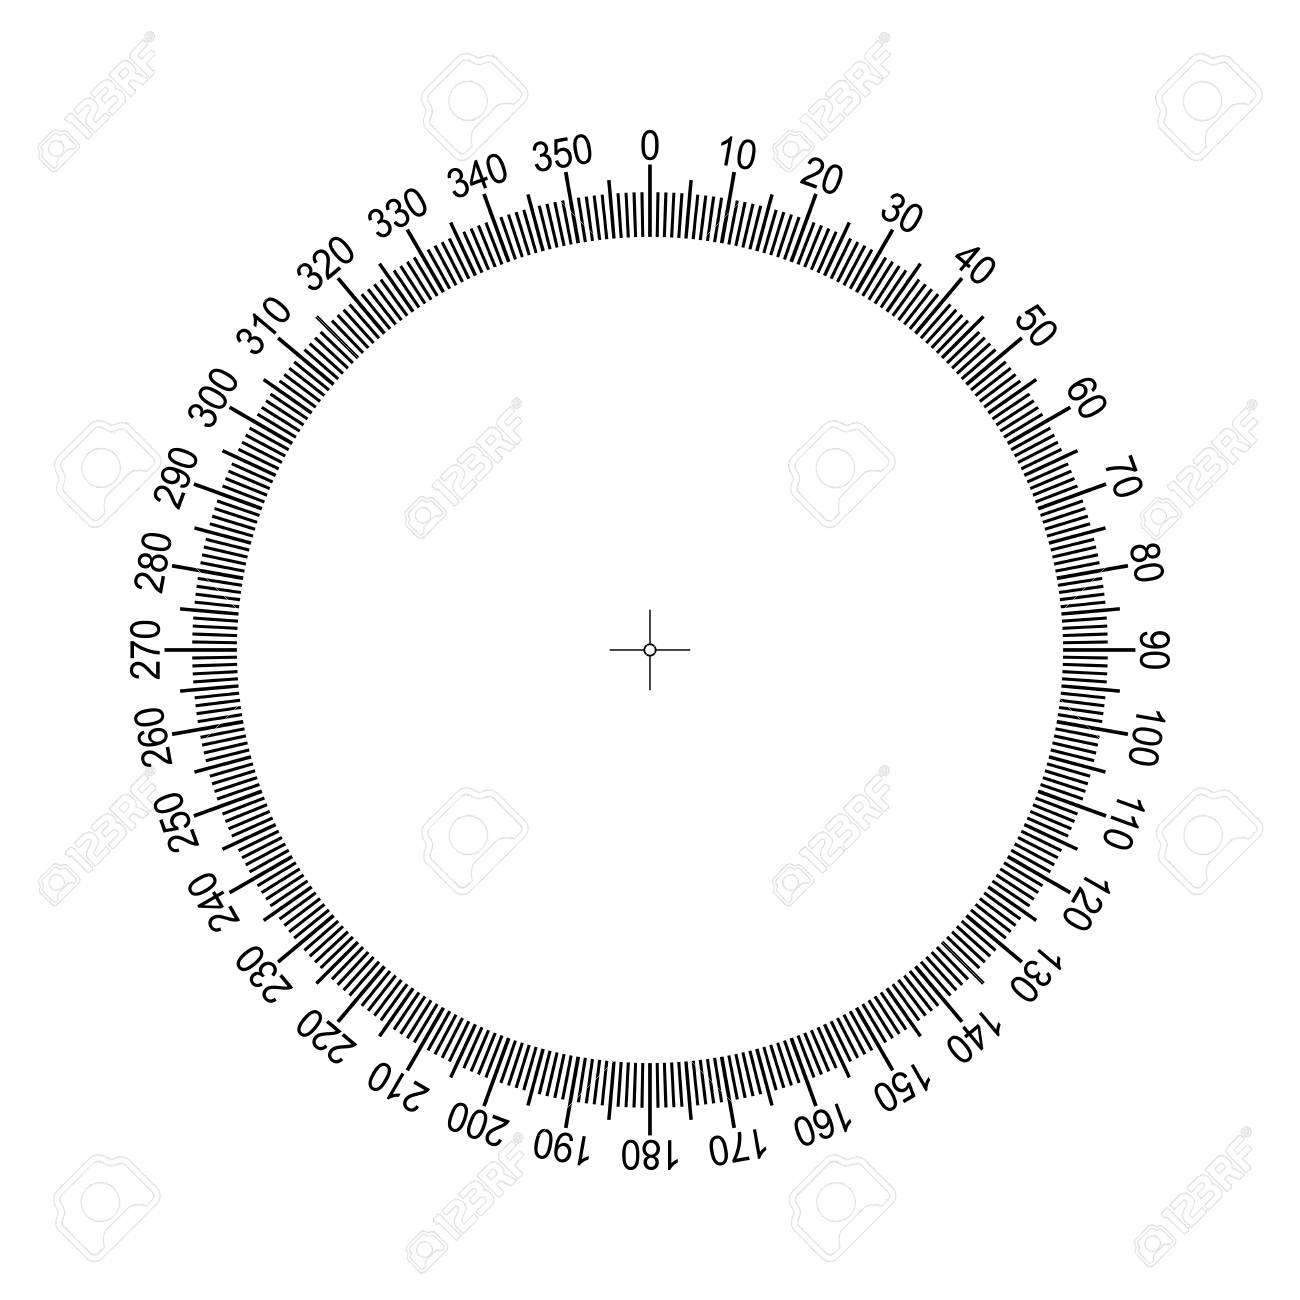 Measuring circle scale. Measuring round scale, Level indicator, measurement acceleration, circular meter for household appliances division from to 350. Graduation 360 degrees Vector EPS10 - 100980663